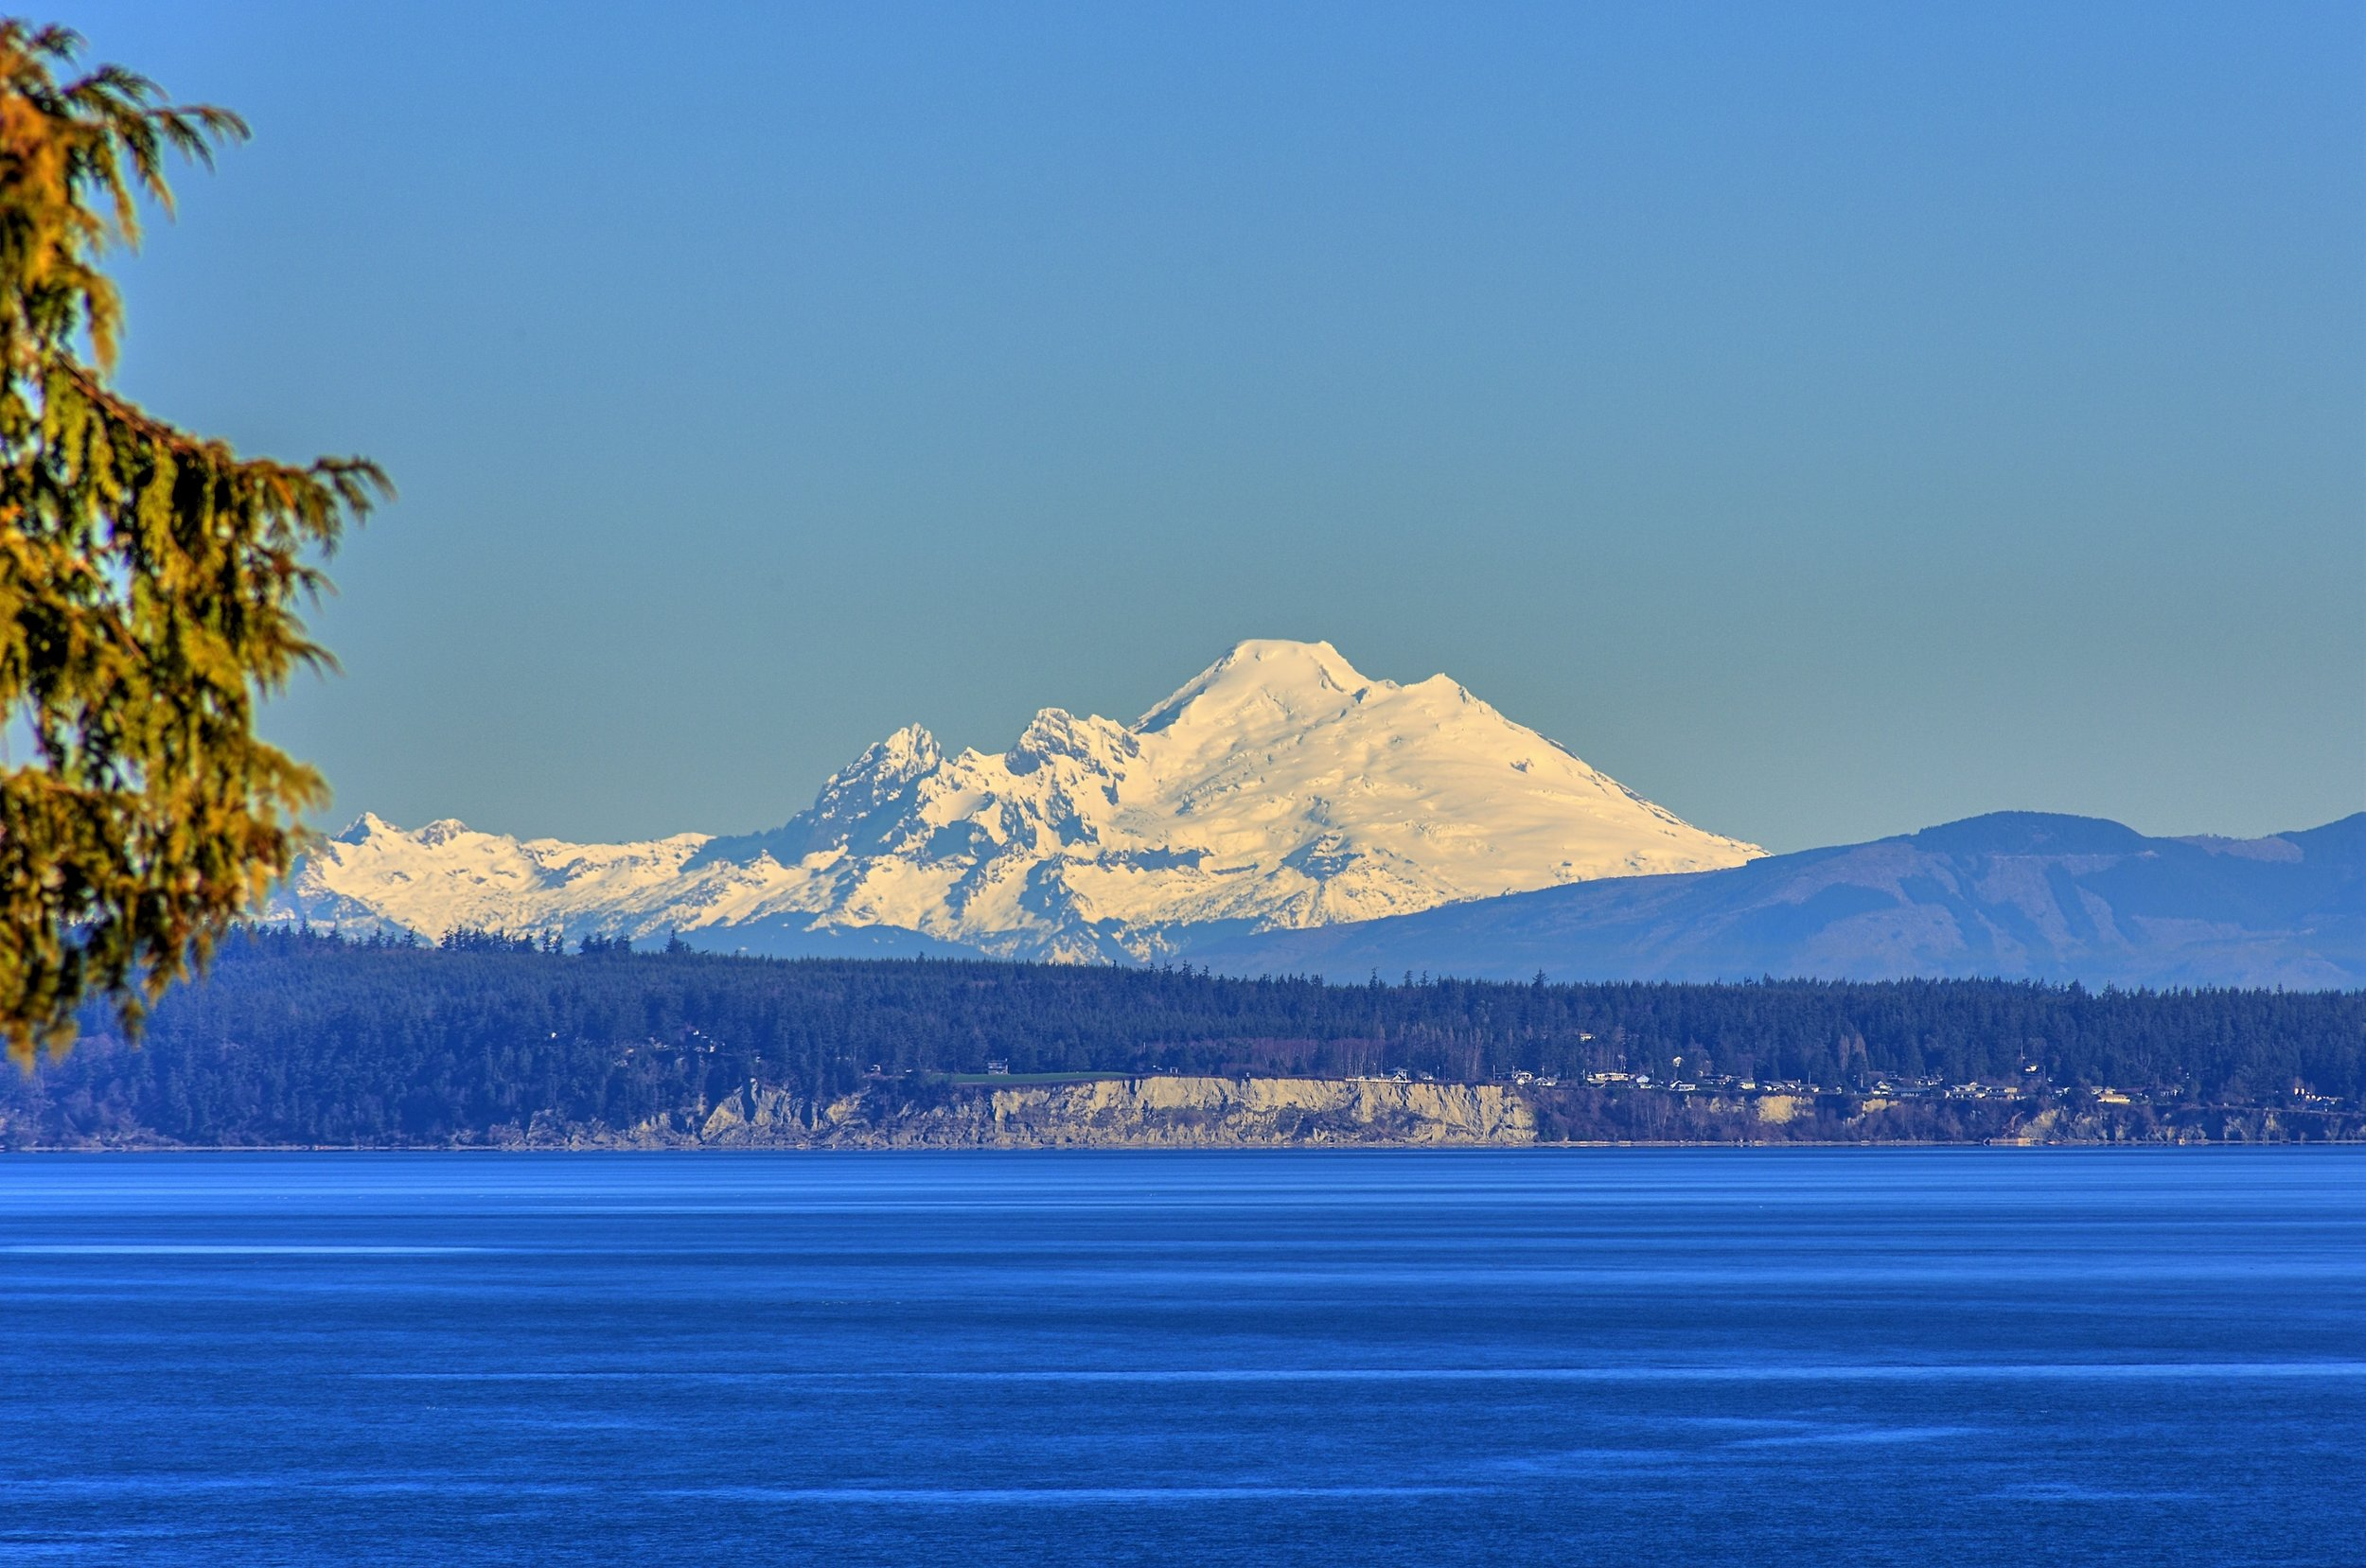 Mt. Baker, from Port Ludlow, WA (yesterday)